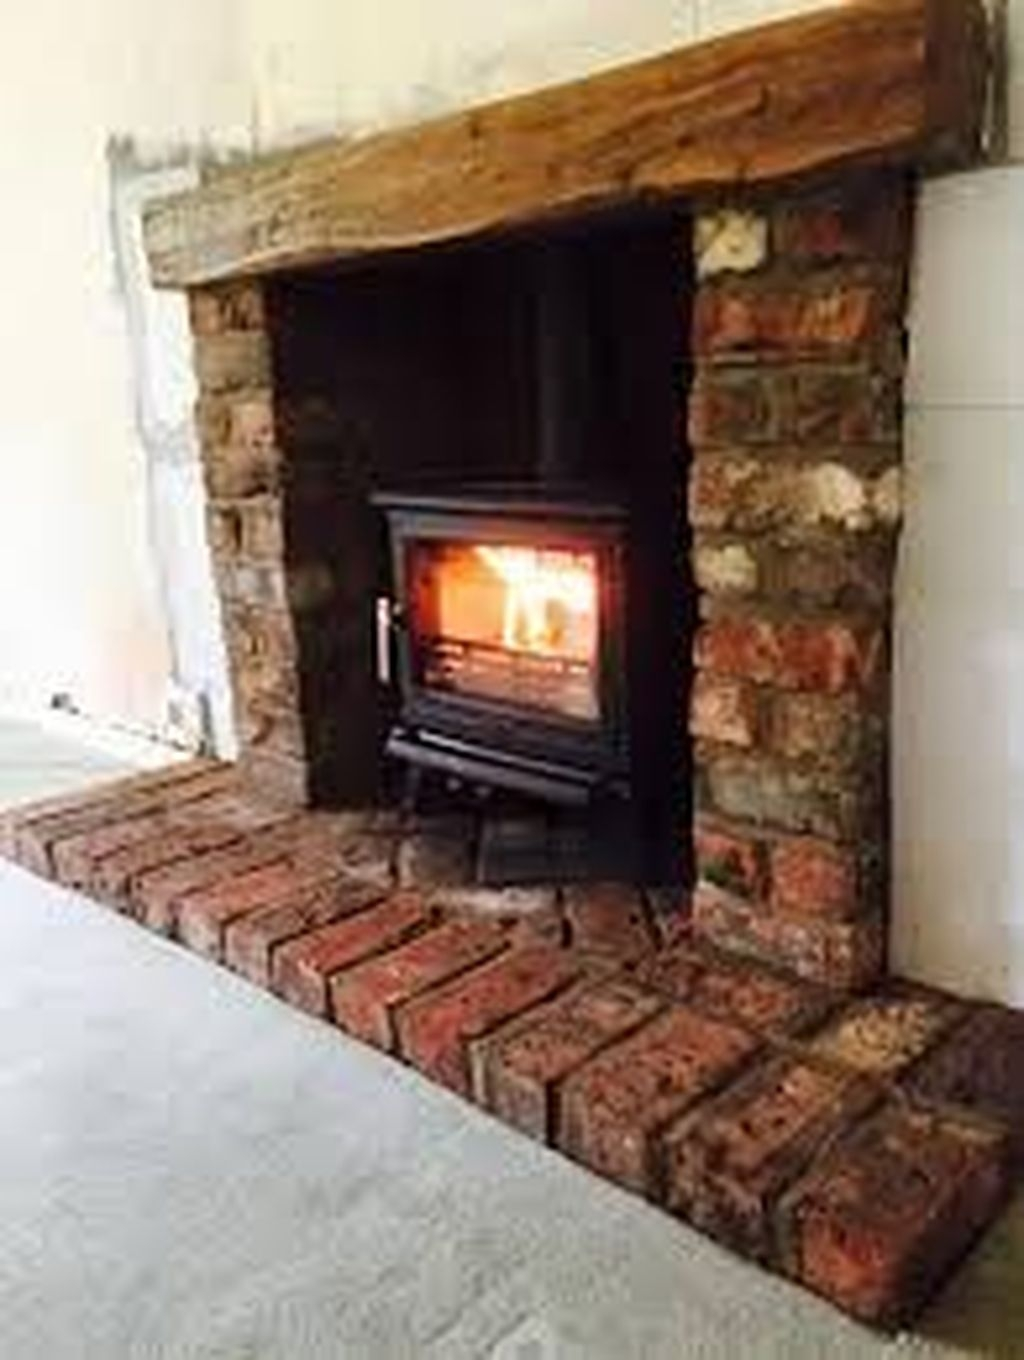 Modern Brick Fireplace Decorations Ideas For Living Room43